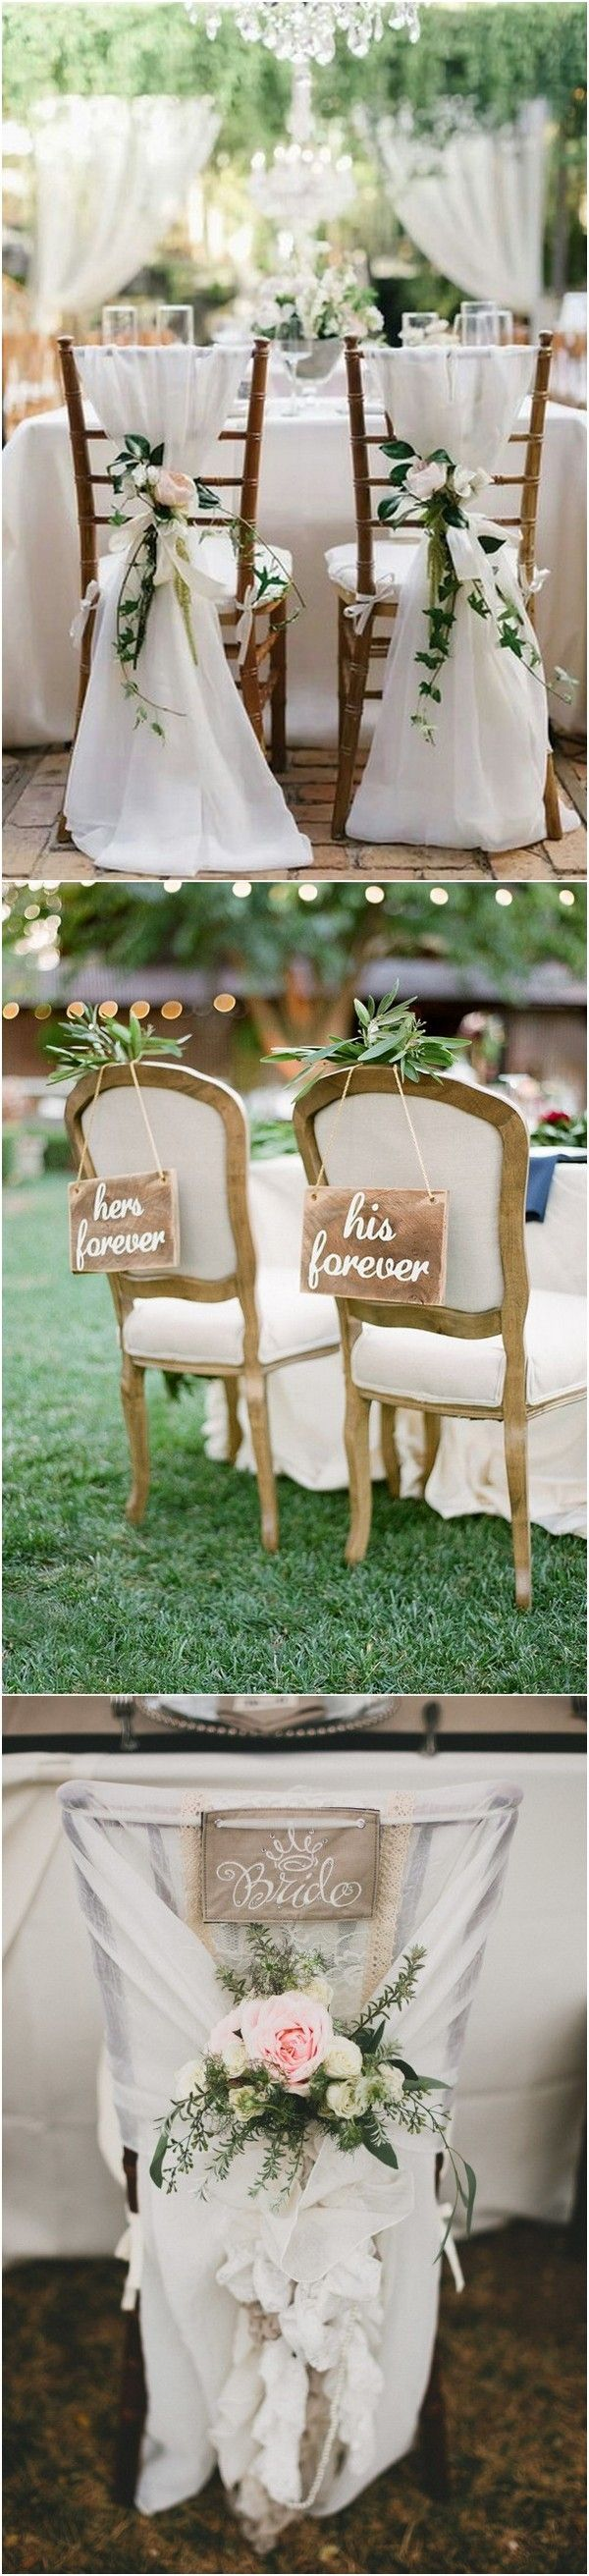 12 Chic Bride And Groom Wedding Chair Decoration Ideas Page 2 Of 2